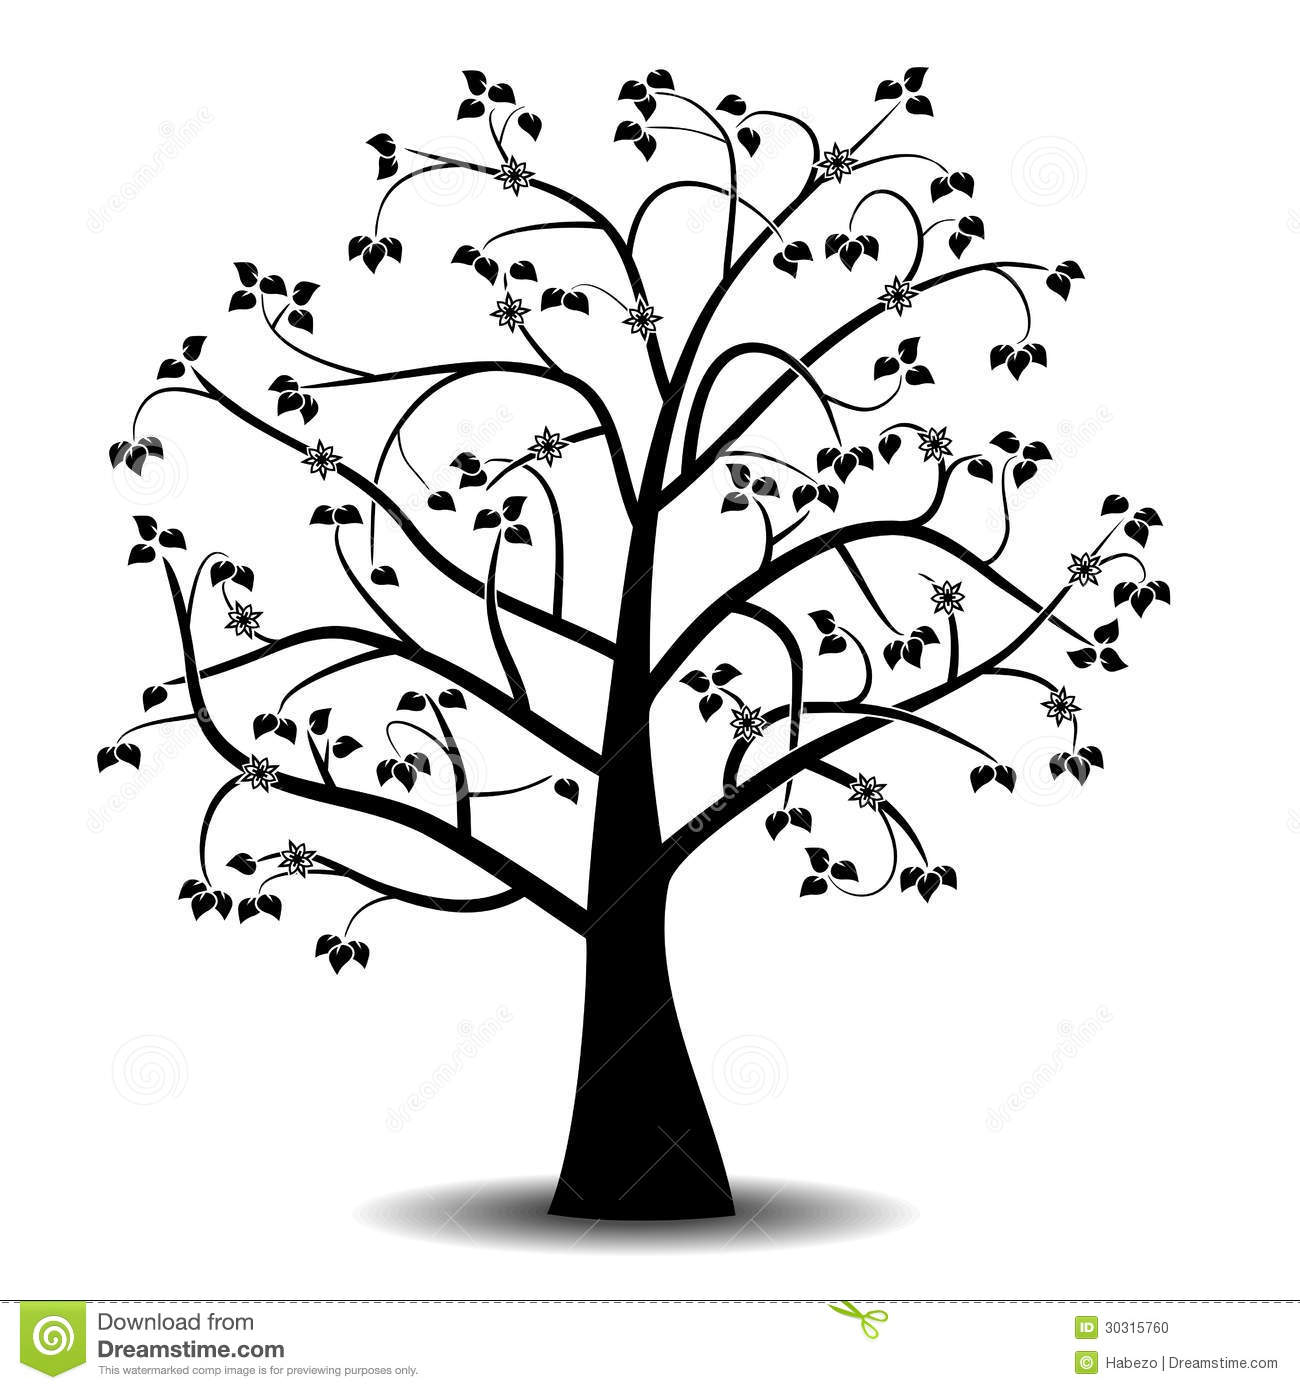 Bird And Tree Wall Stickers Art Tree Black Silhouette Stock Illustration Illustration